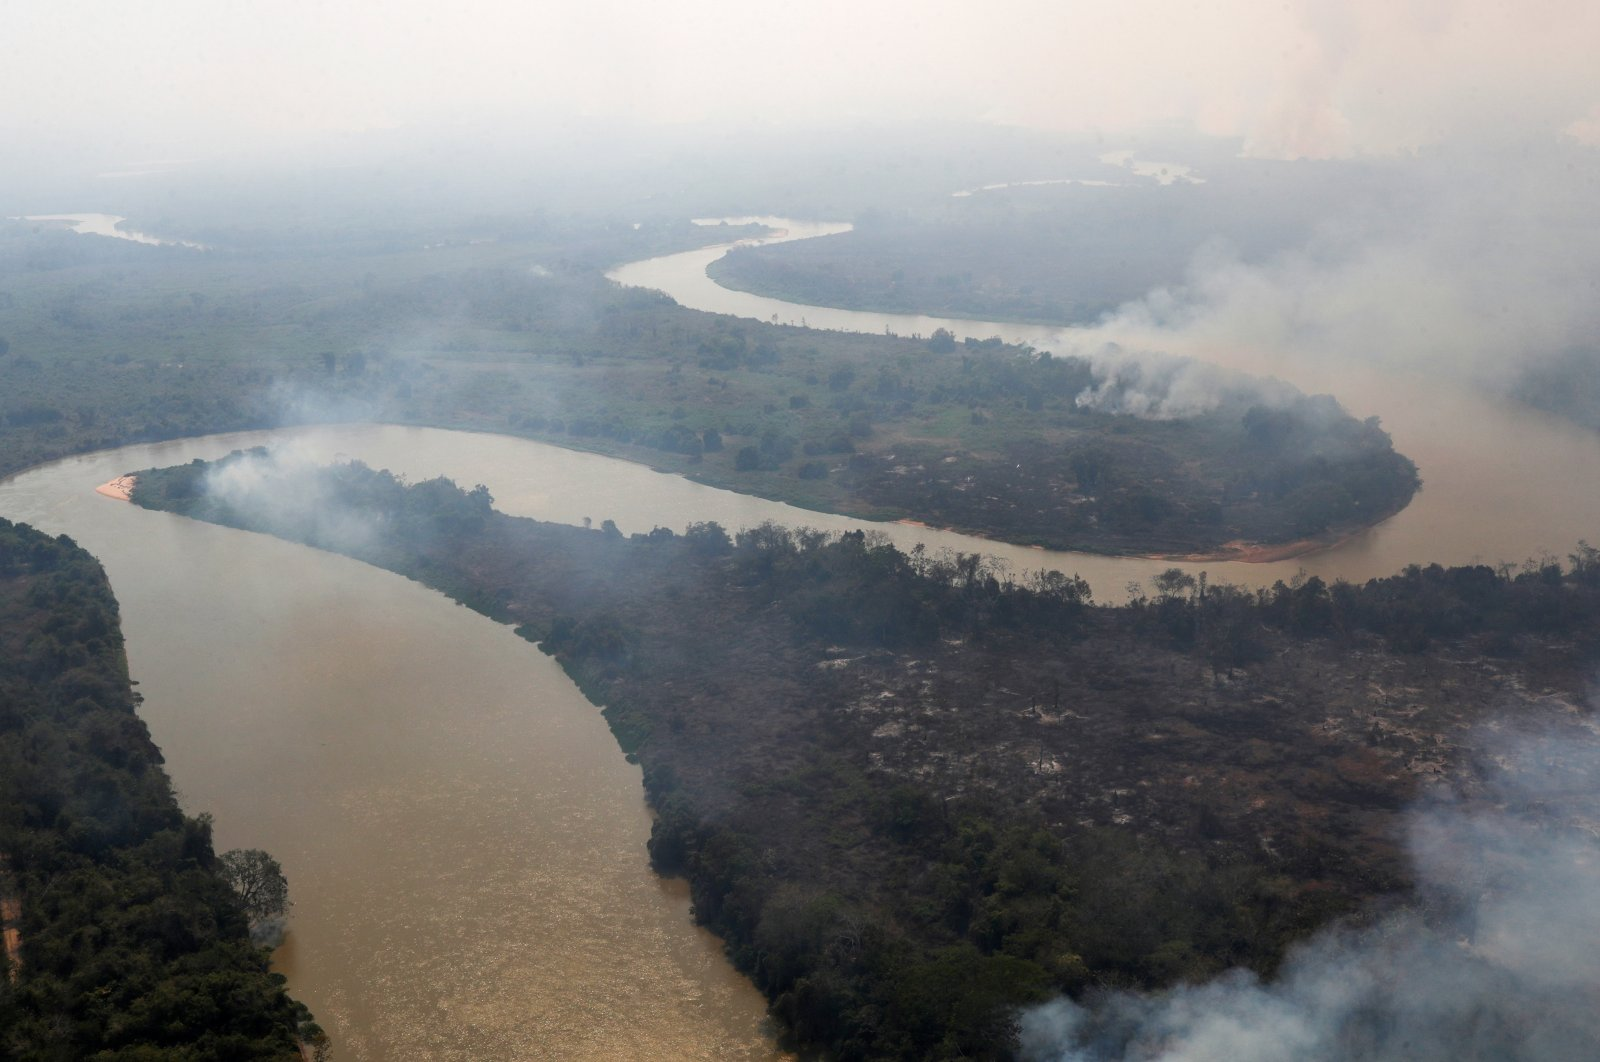 Smoke from a fire is seen near Cuiaba River at Pantanal, in Pocone, Mato Grosso state, Brazil, Aug. 28, 2020. (Reuters Photo)